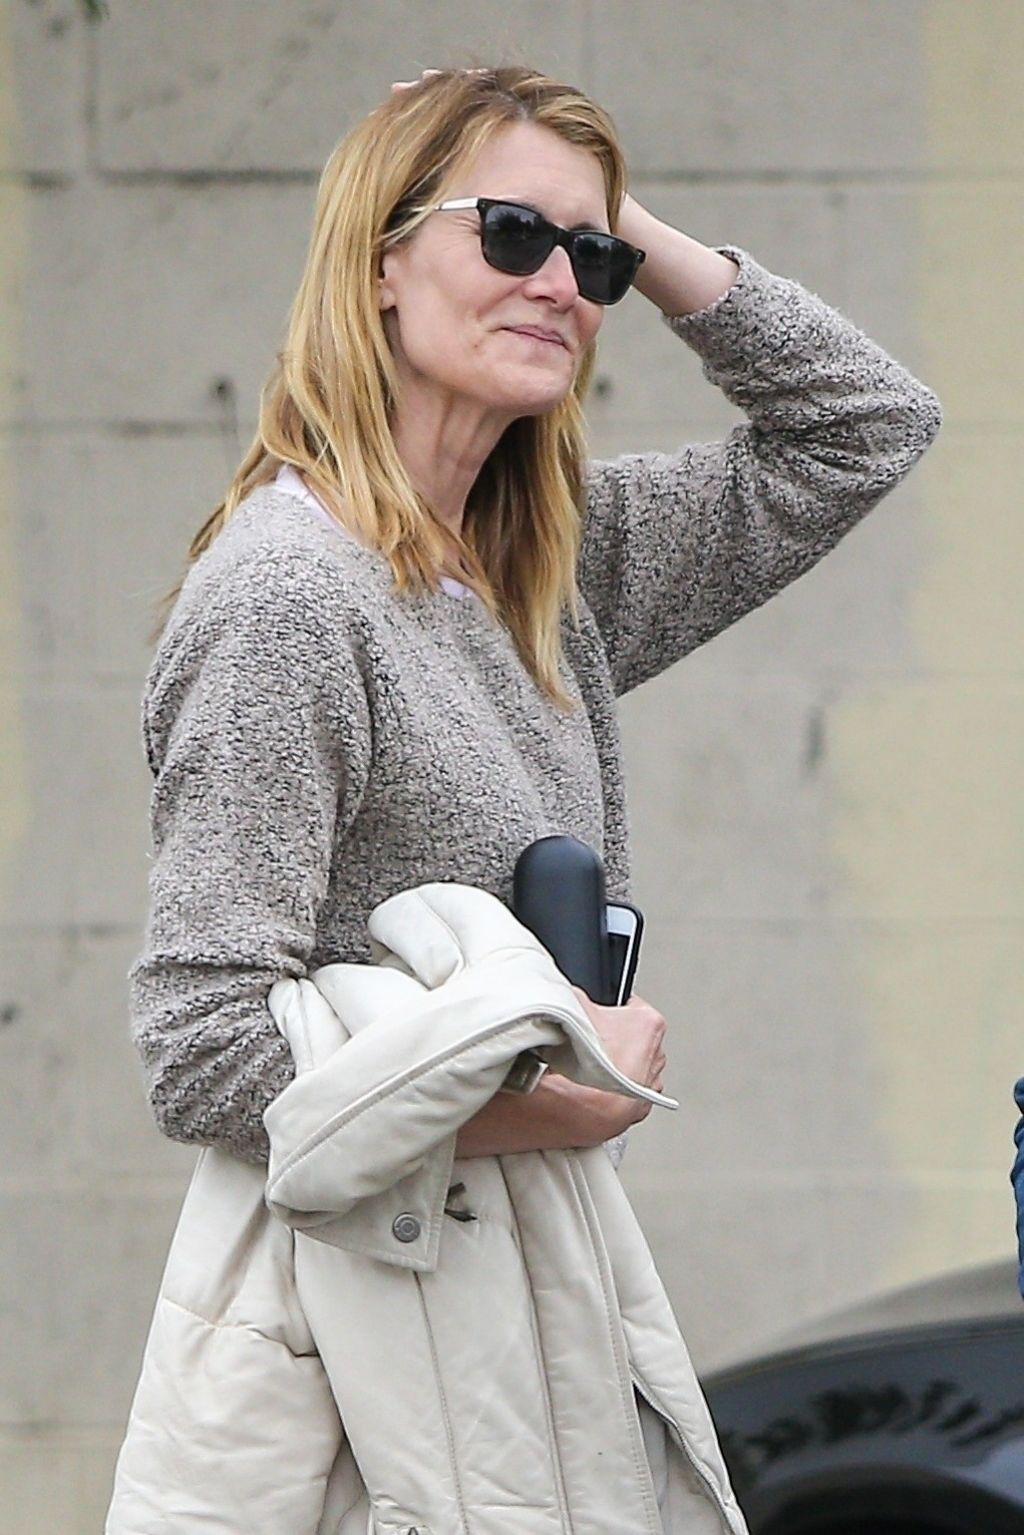 Laura Dern Out In Brentwood 03 18 2018